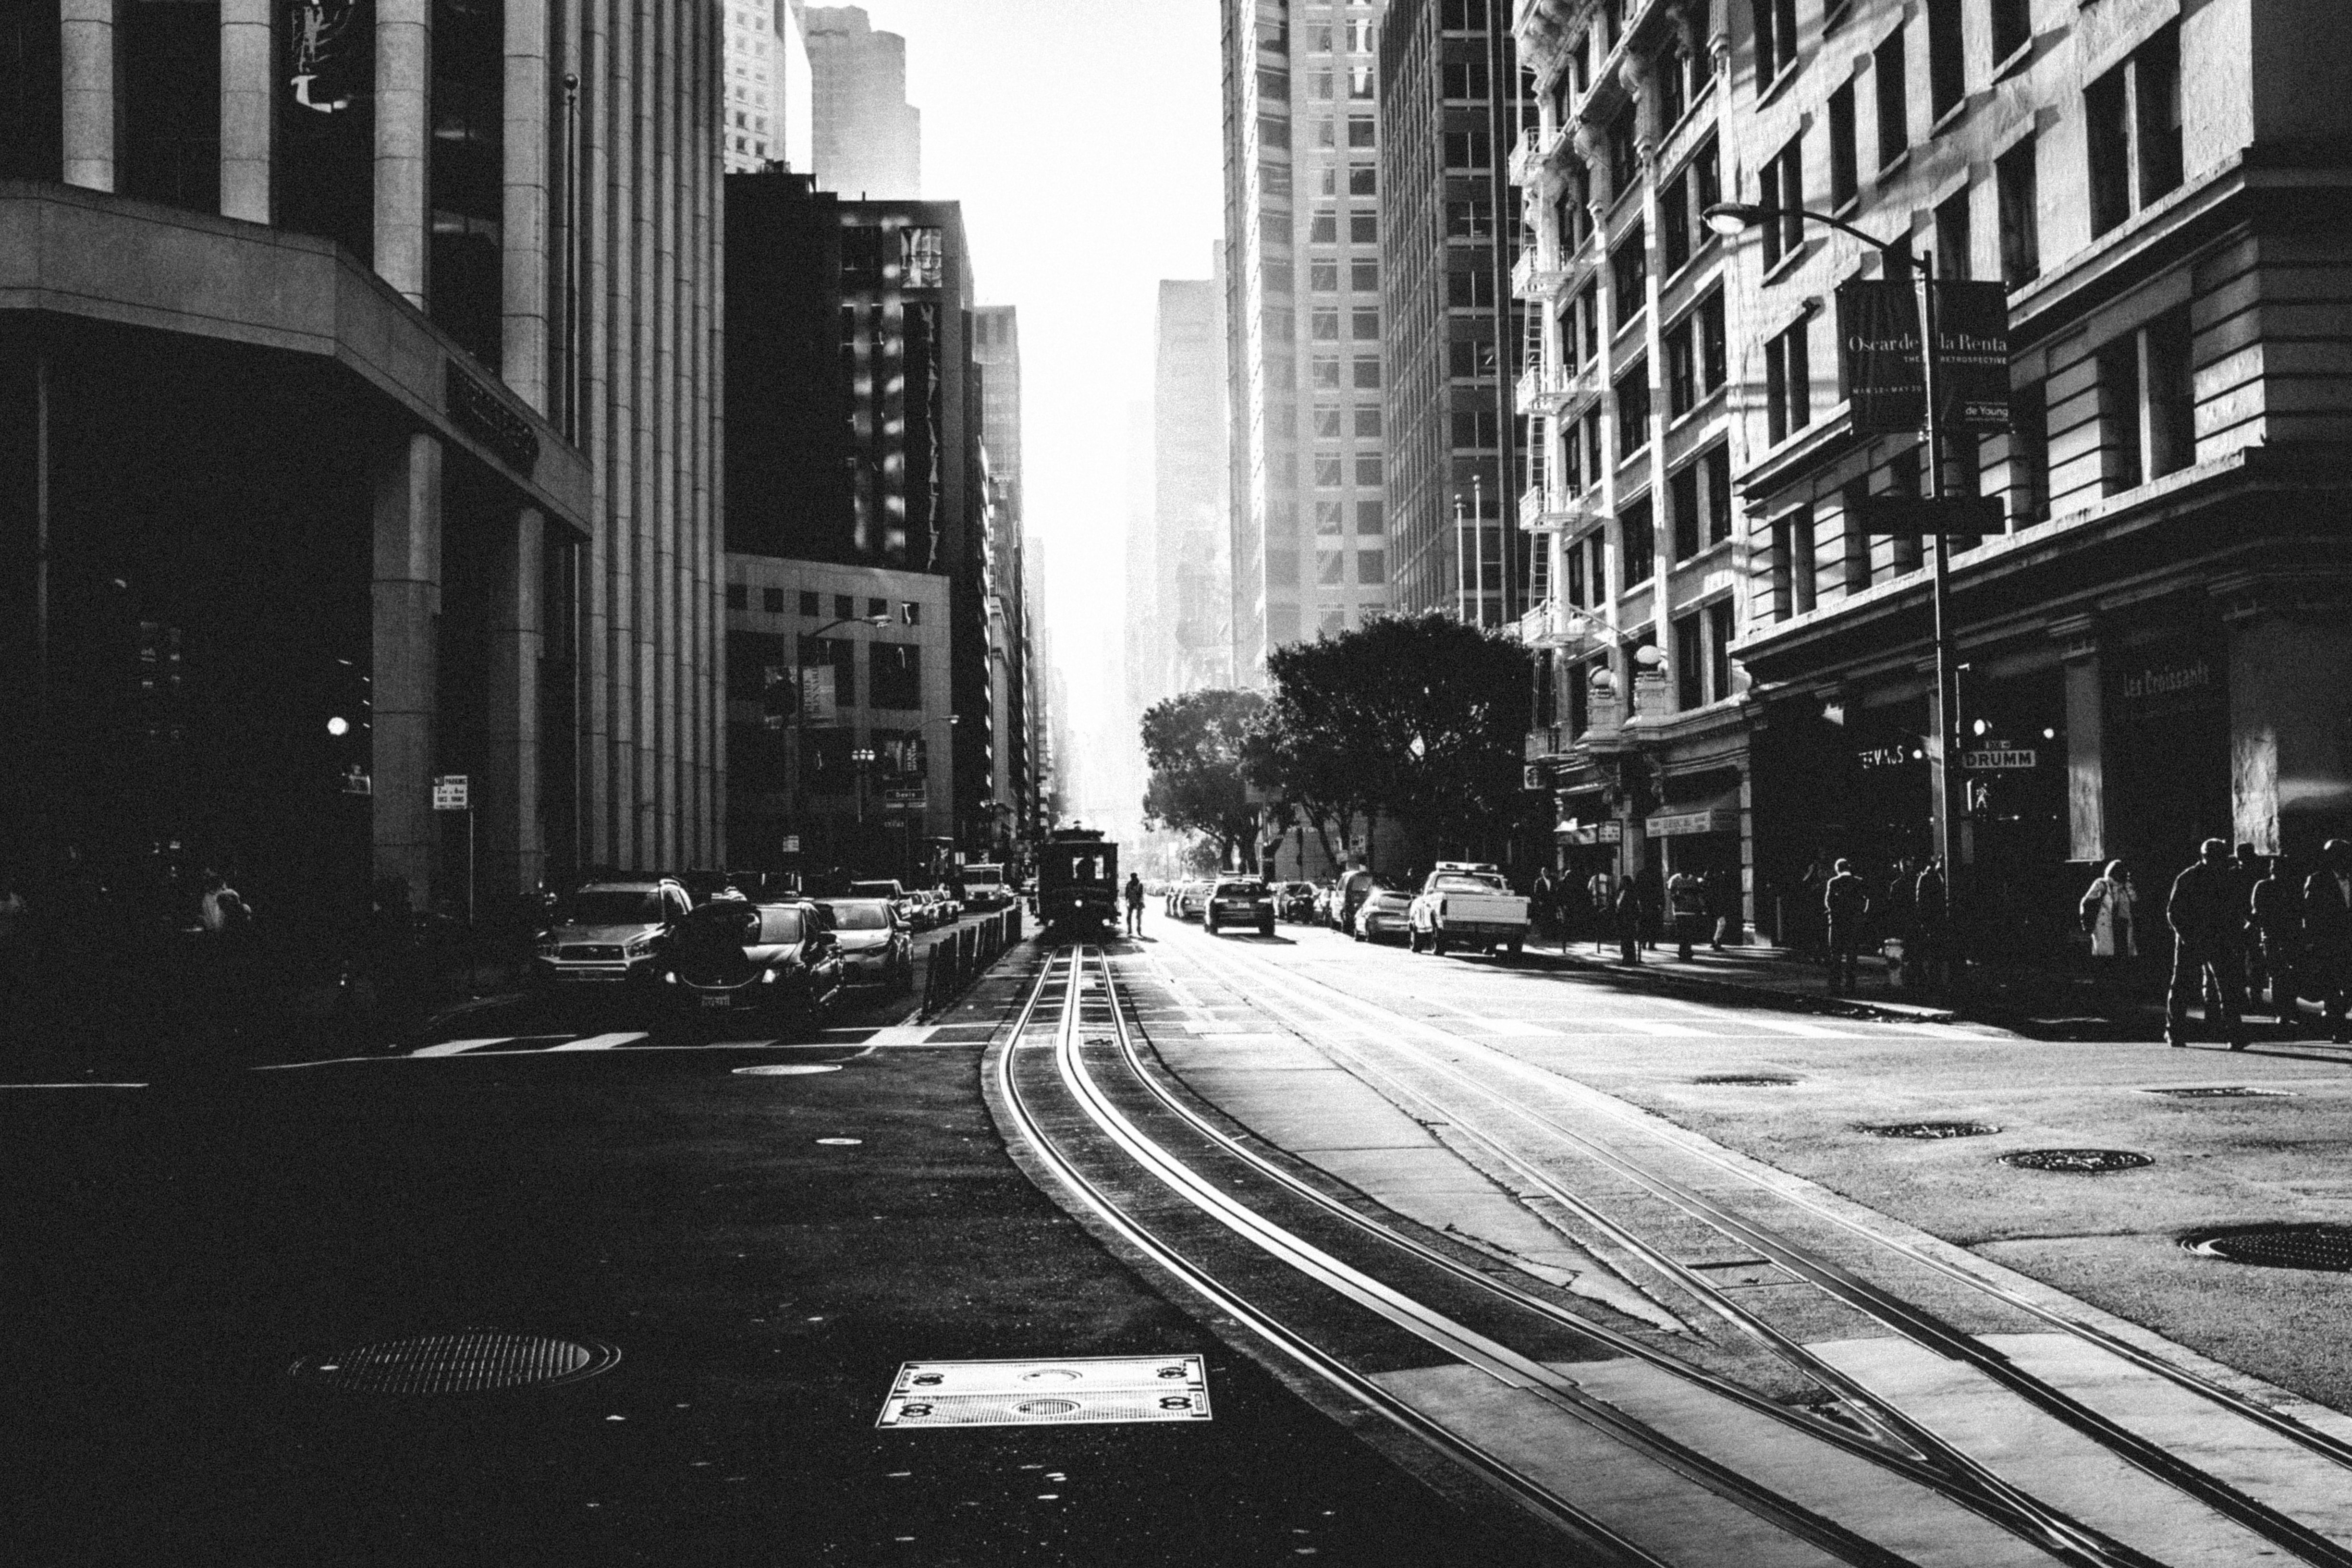 Black and white shot of urban street in San Francisco with people, tramlines and cars